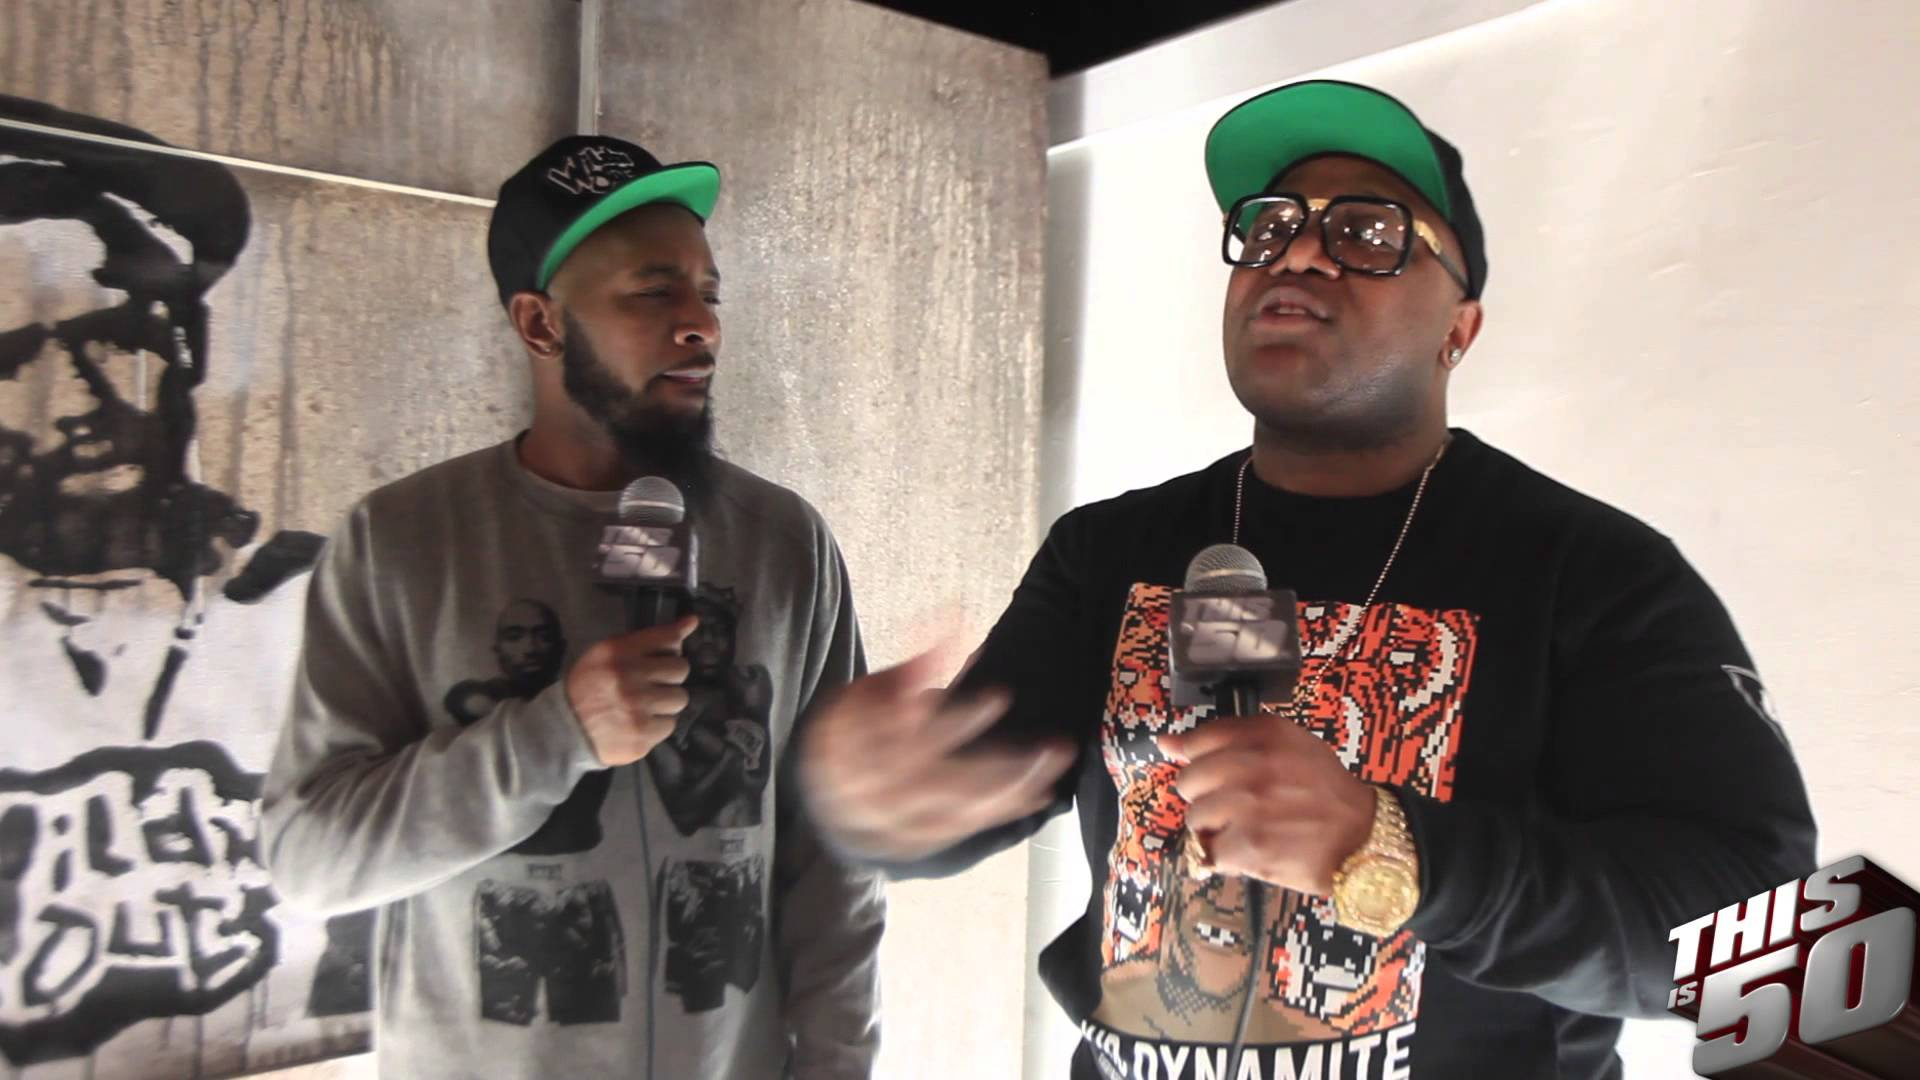 why did karlous miller get fired from wild n out